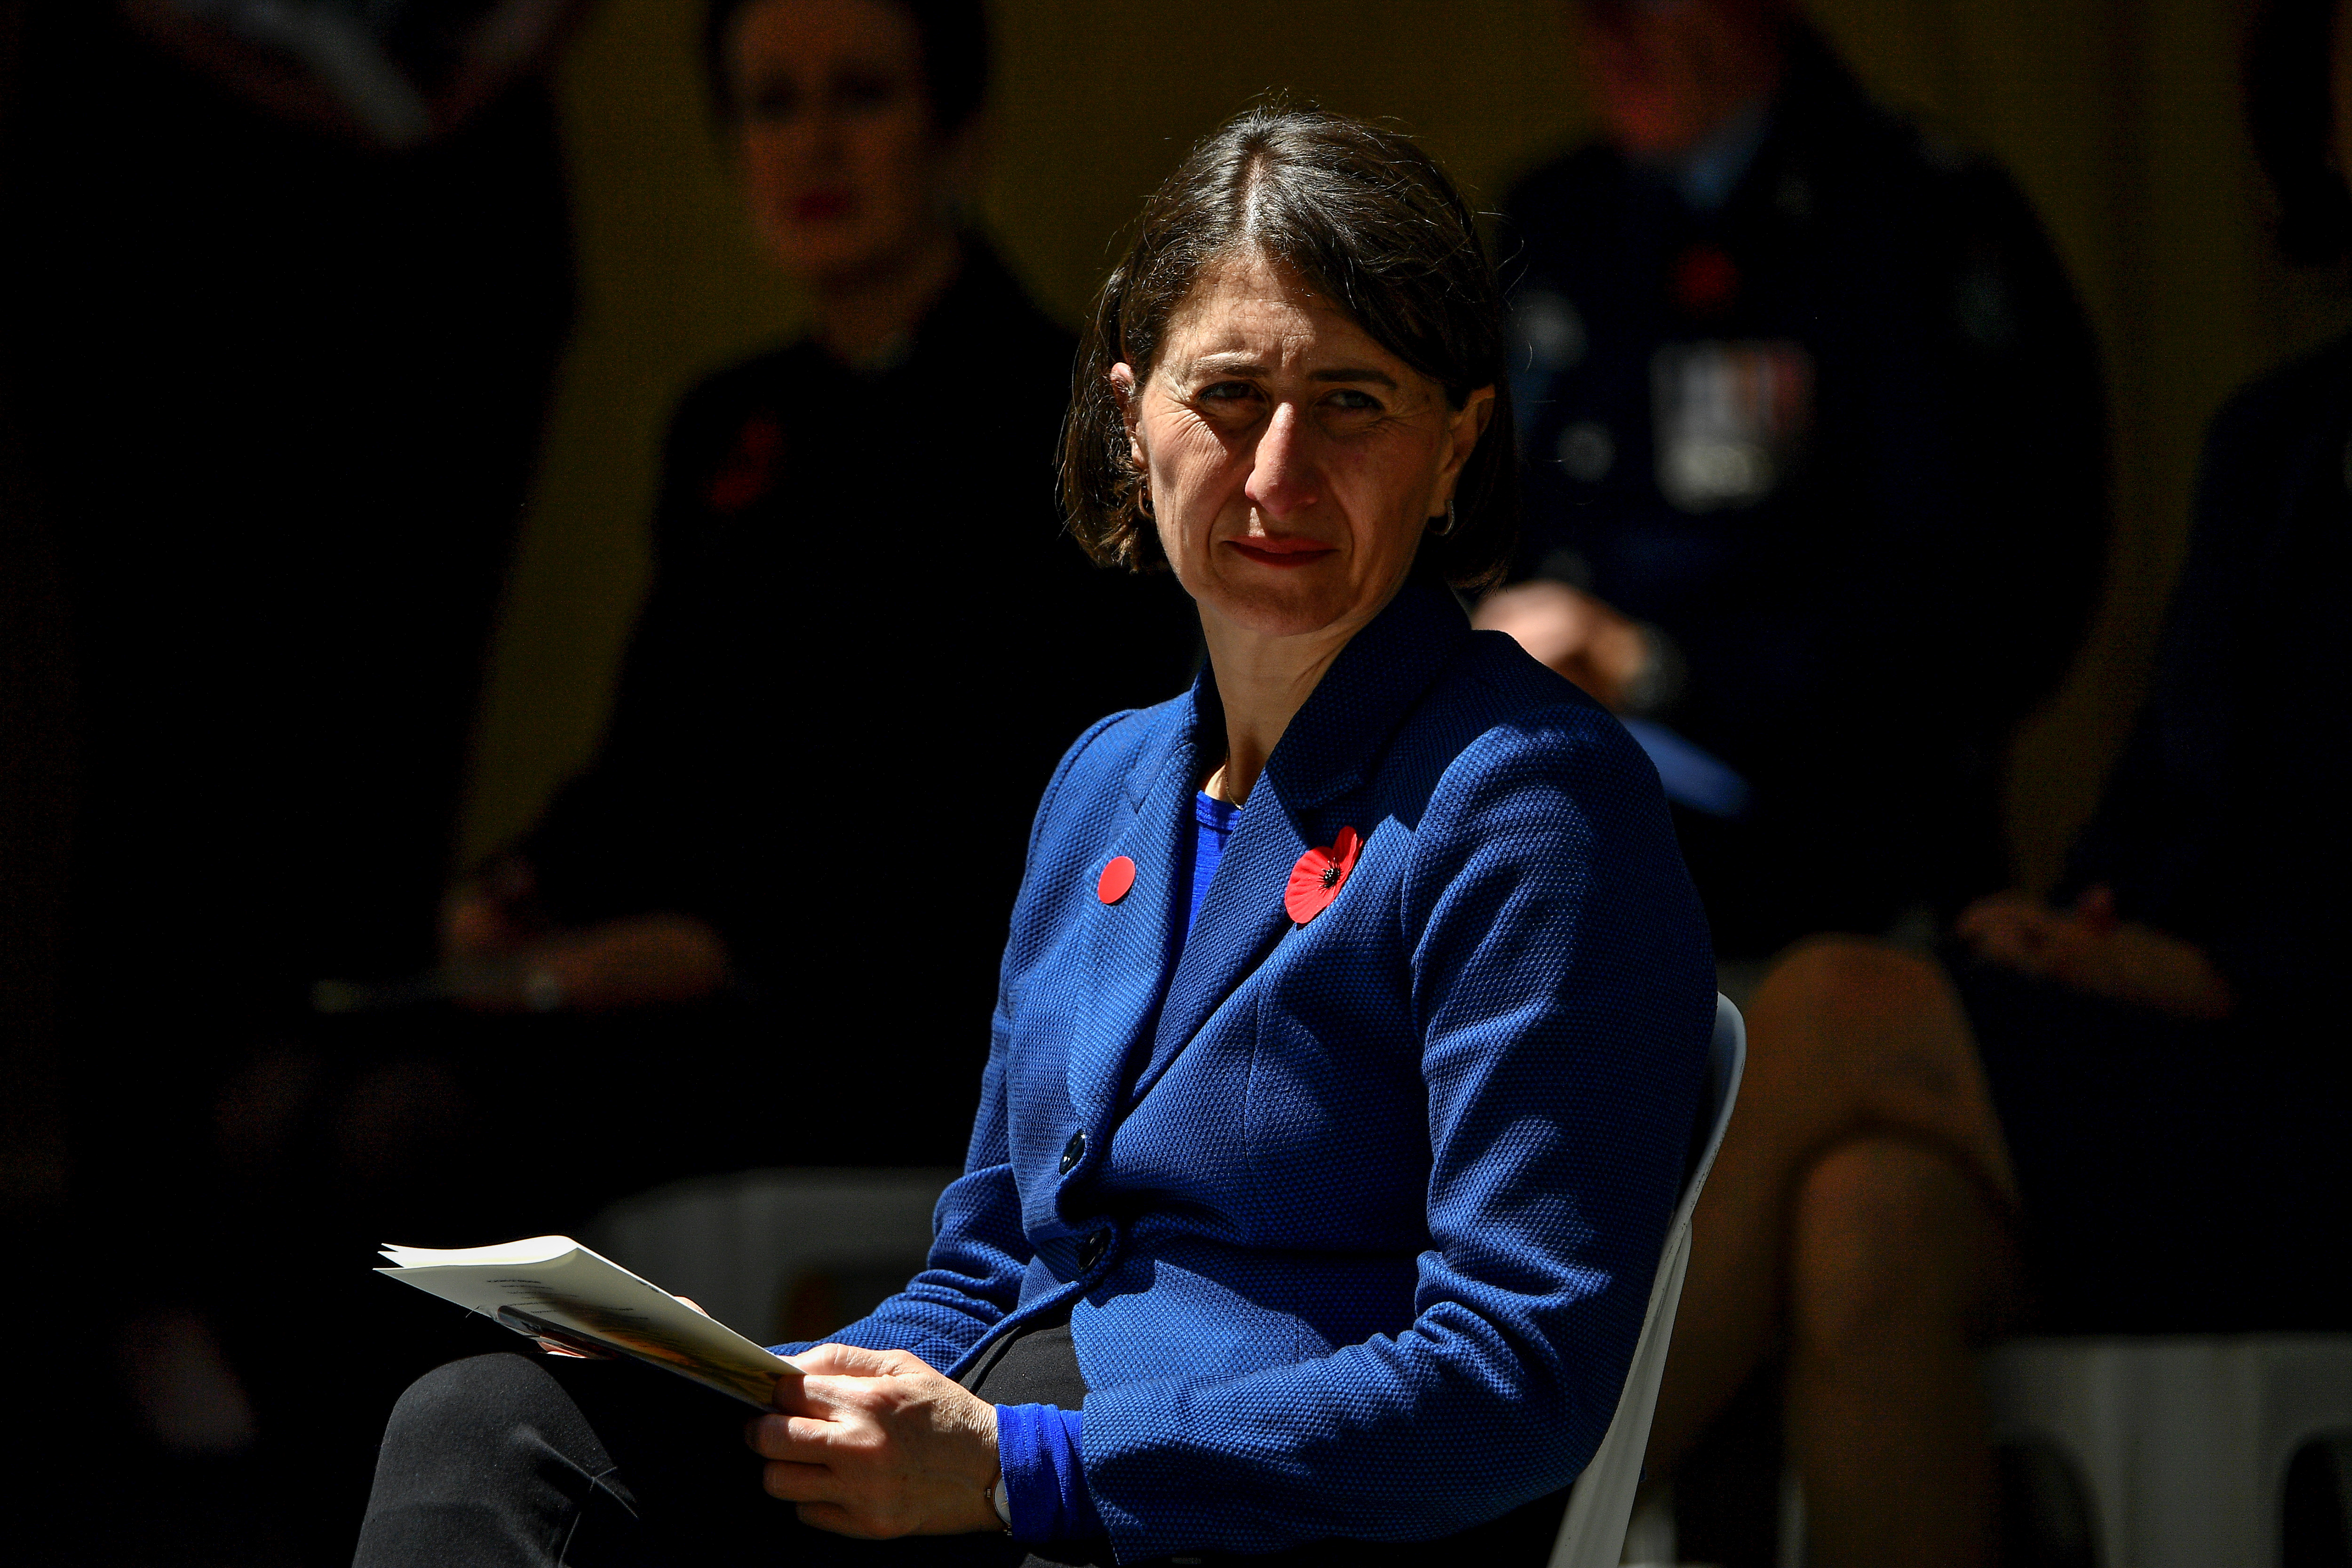 New South Wales premier Gladys Berejiklian attends the Remembrance Day Service at Martin Place in Sydney, Australia November 11, 2020. Saeed Khan/Pool via REUTERS